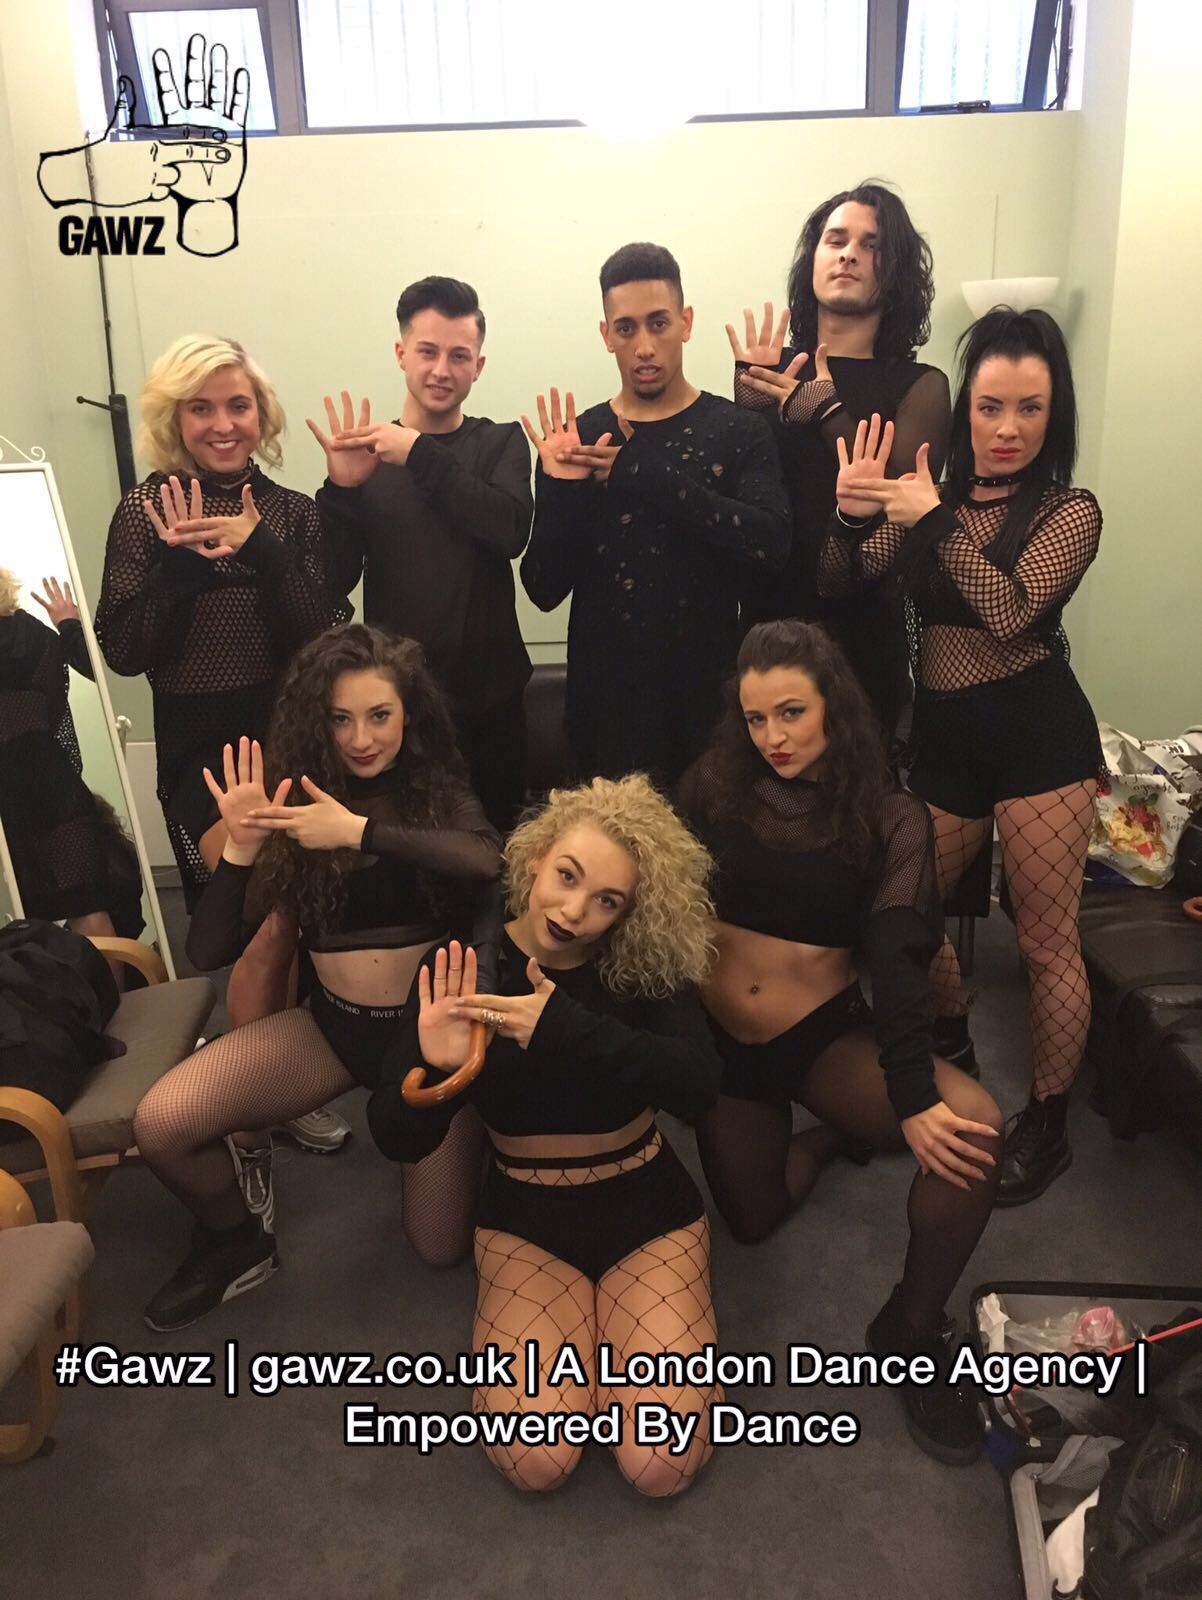 Our talented Gawz dancers posing backstage at the DGC Dance Show 11!